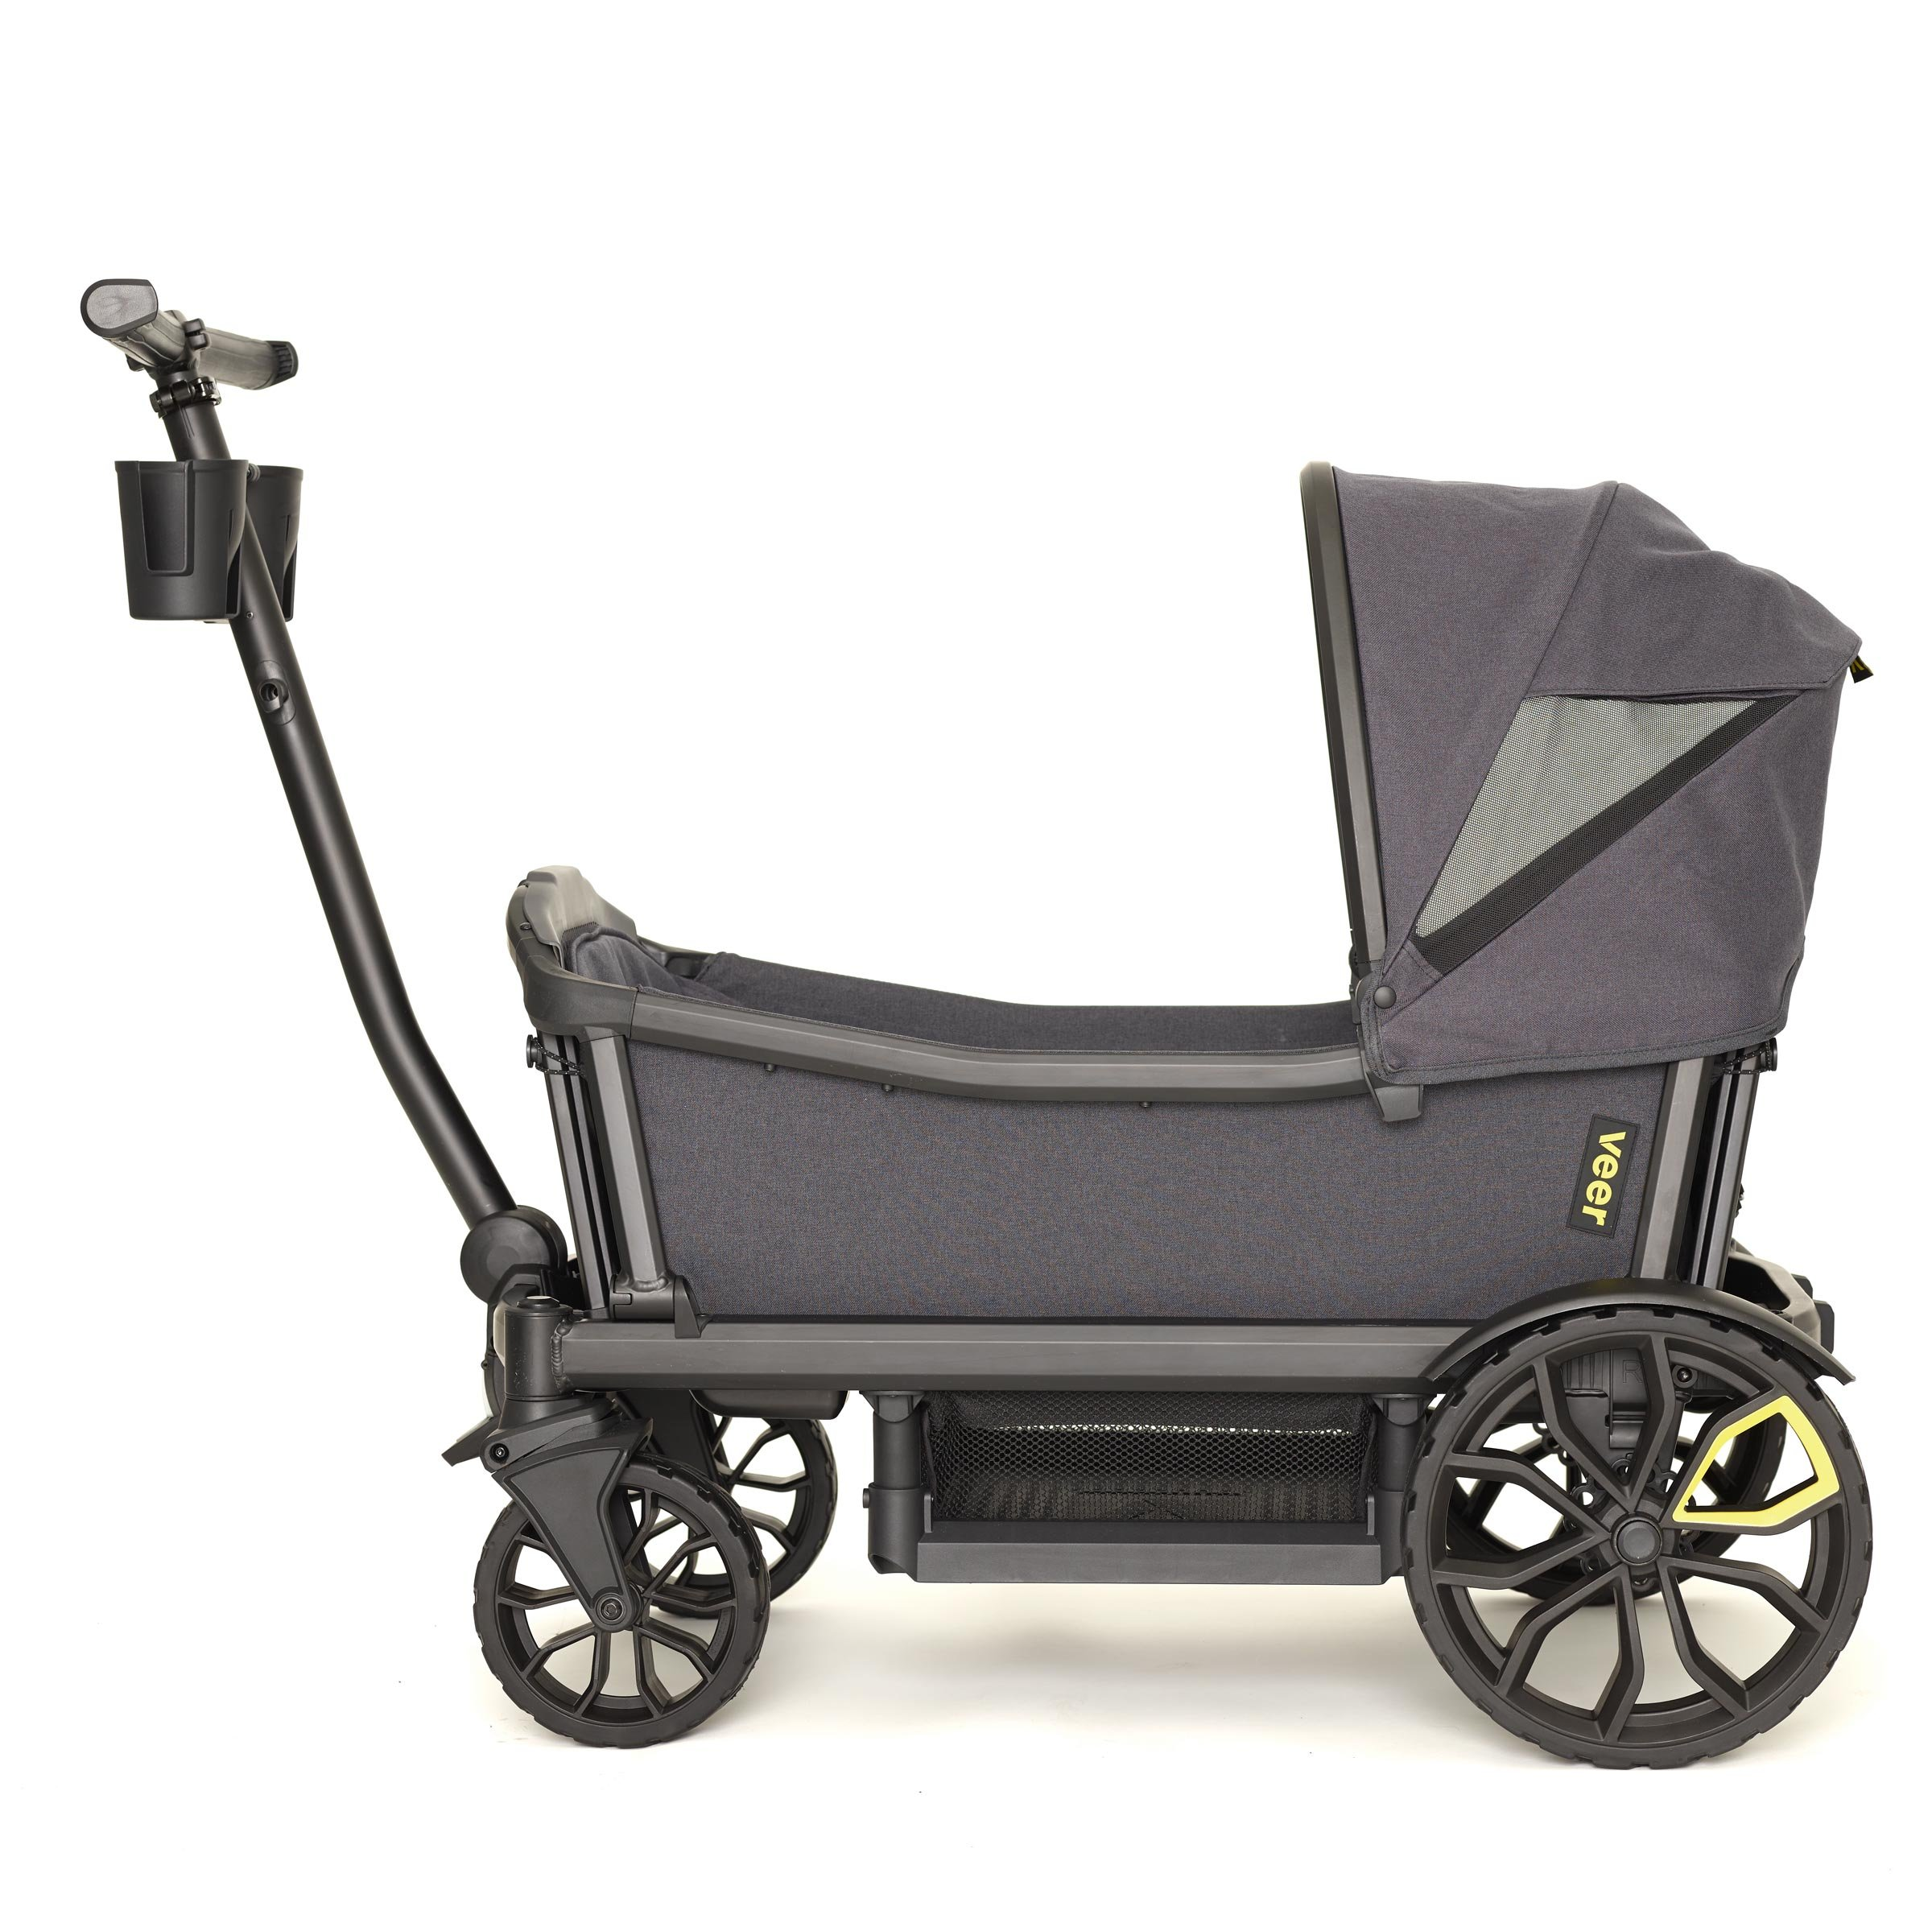 Veer Cruiser with Retractable Canopy | Next Generation Premium Stroller Wagon Hybrid by Veer (Image #1)